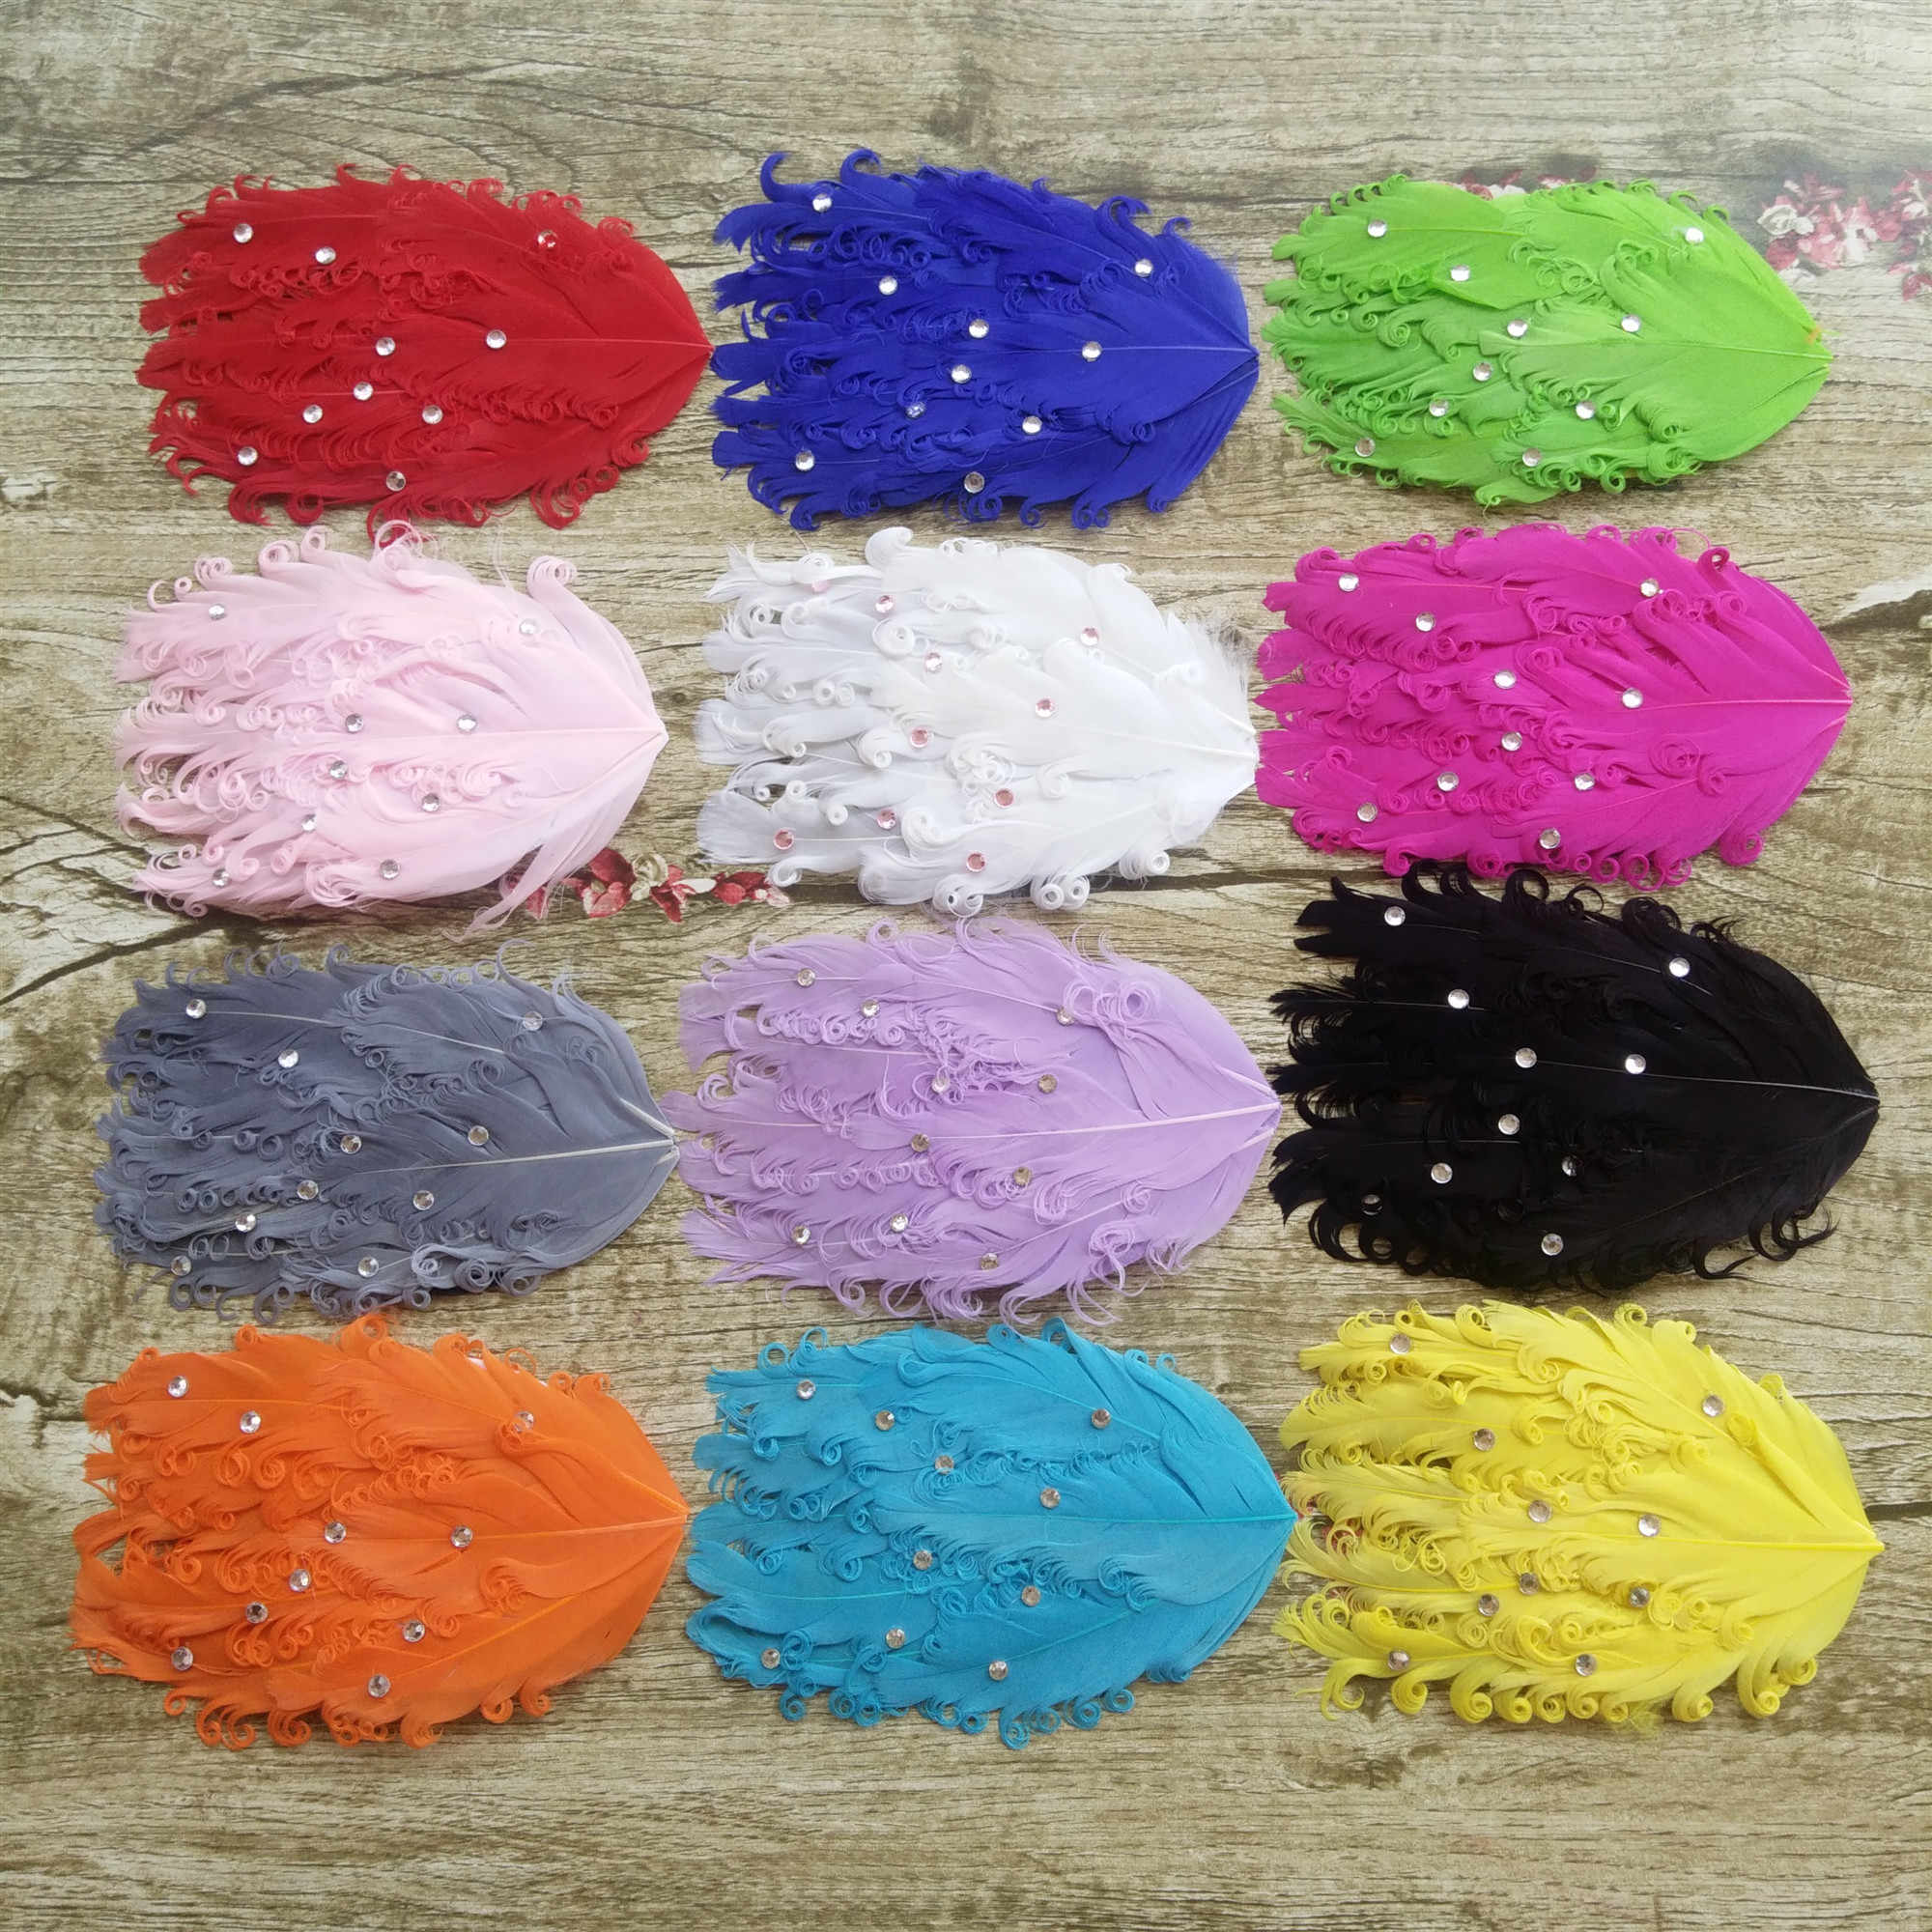 New! 1pcs/lot Curly Nagorie Curled Goose Feather Pad Goose Feathers Pads for Headband Baby Hair Band Spot drill Layers